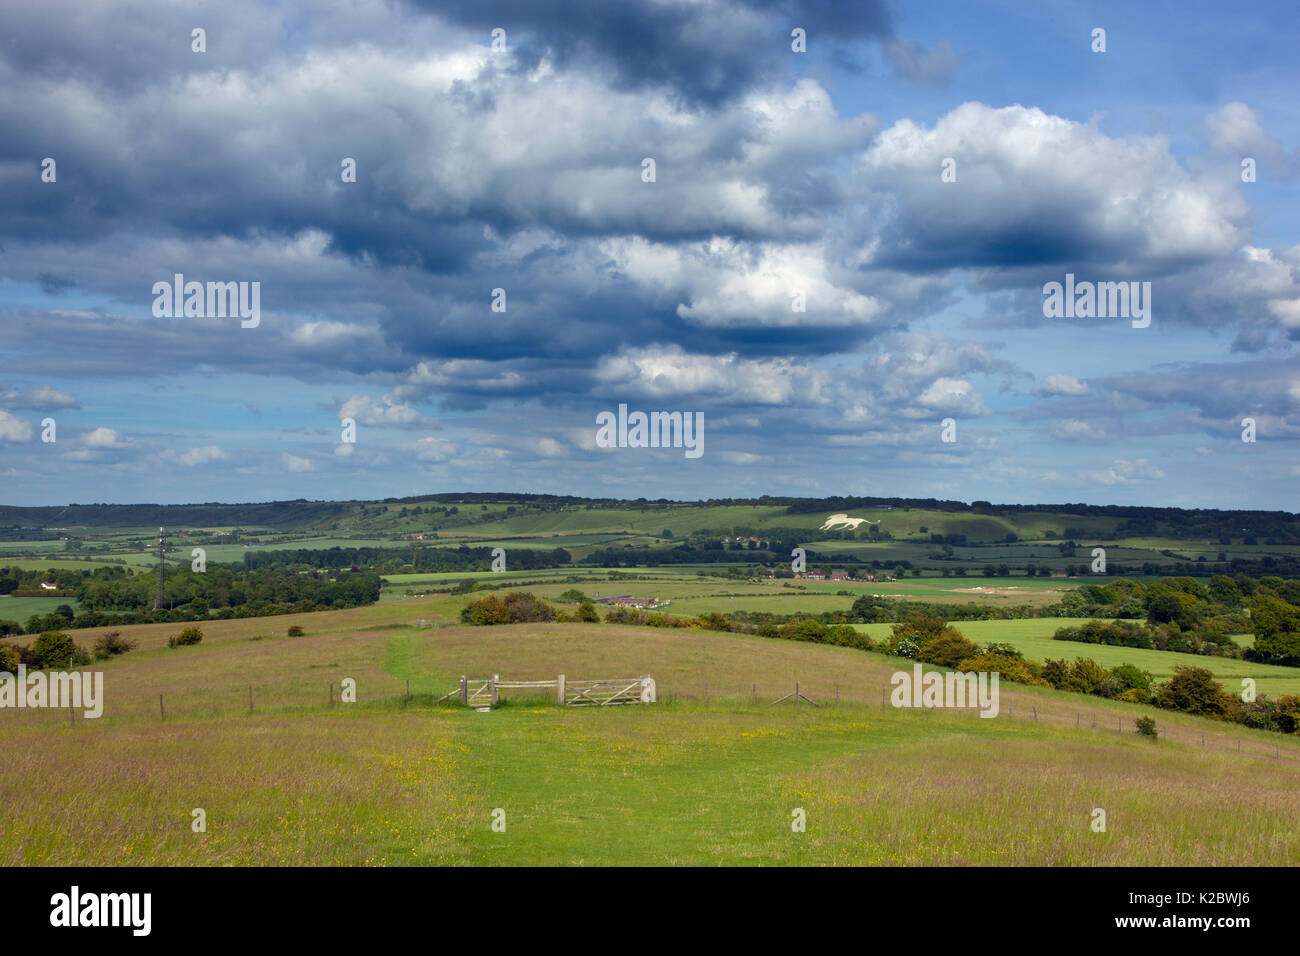 View towards Whipsnade and the Chalk Lion, Chiltern Downland, Ivinghoe Hills, Buckinghamshire, UK. June 2014. June. - Stock Image